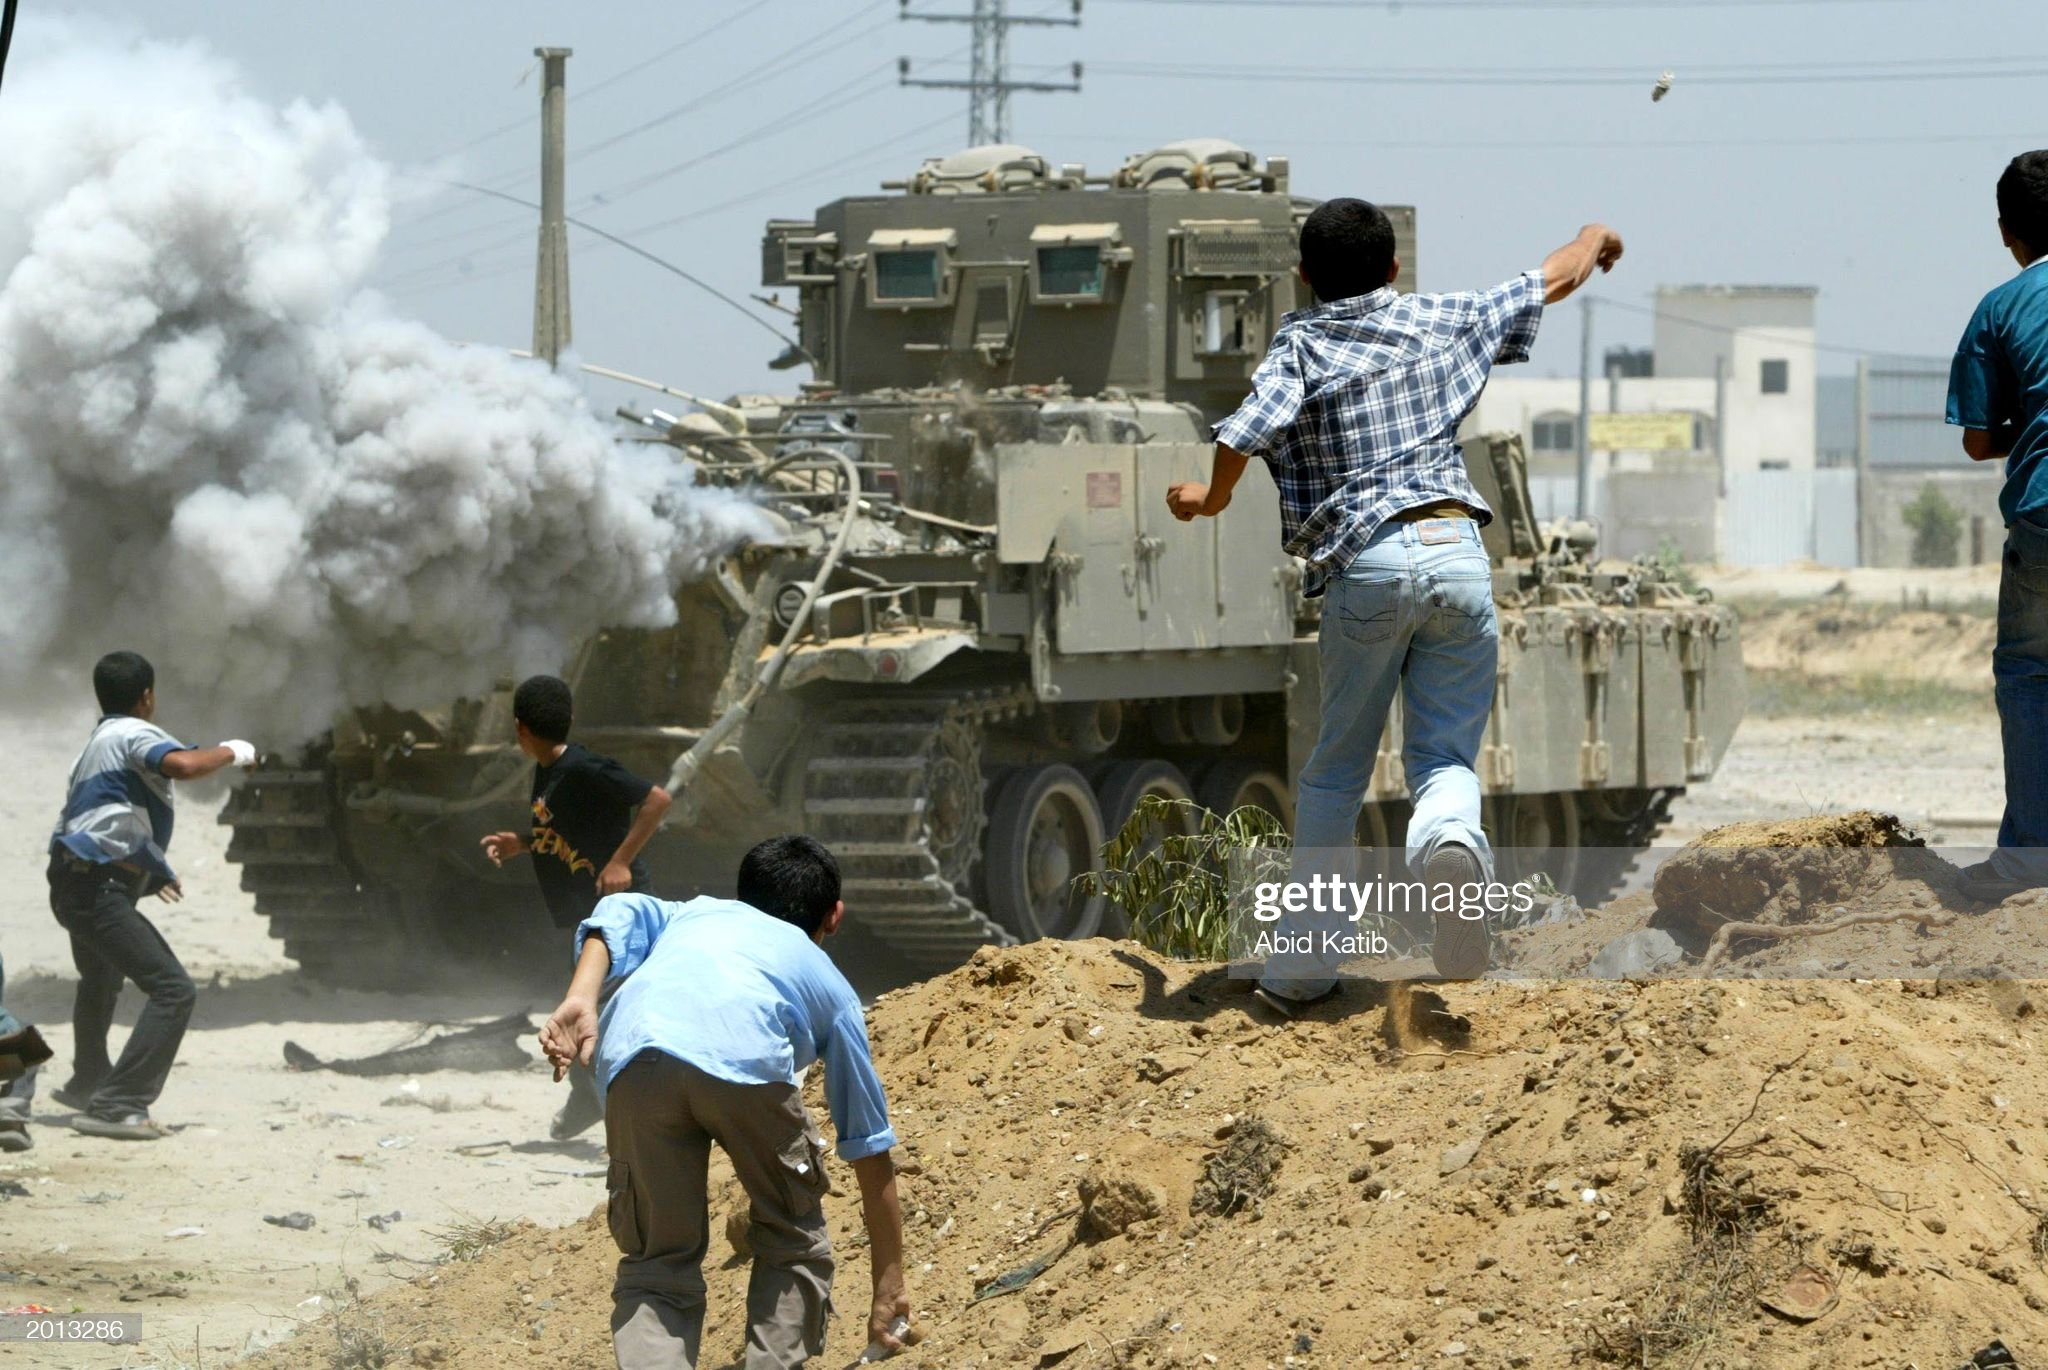 https://media.gettyimages.com/photos/palestinian-boys-throw-stones-at-an-israeli-tank-during-a-clash-may-picture-id2013286?s=2048x2048